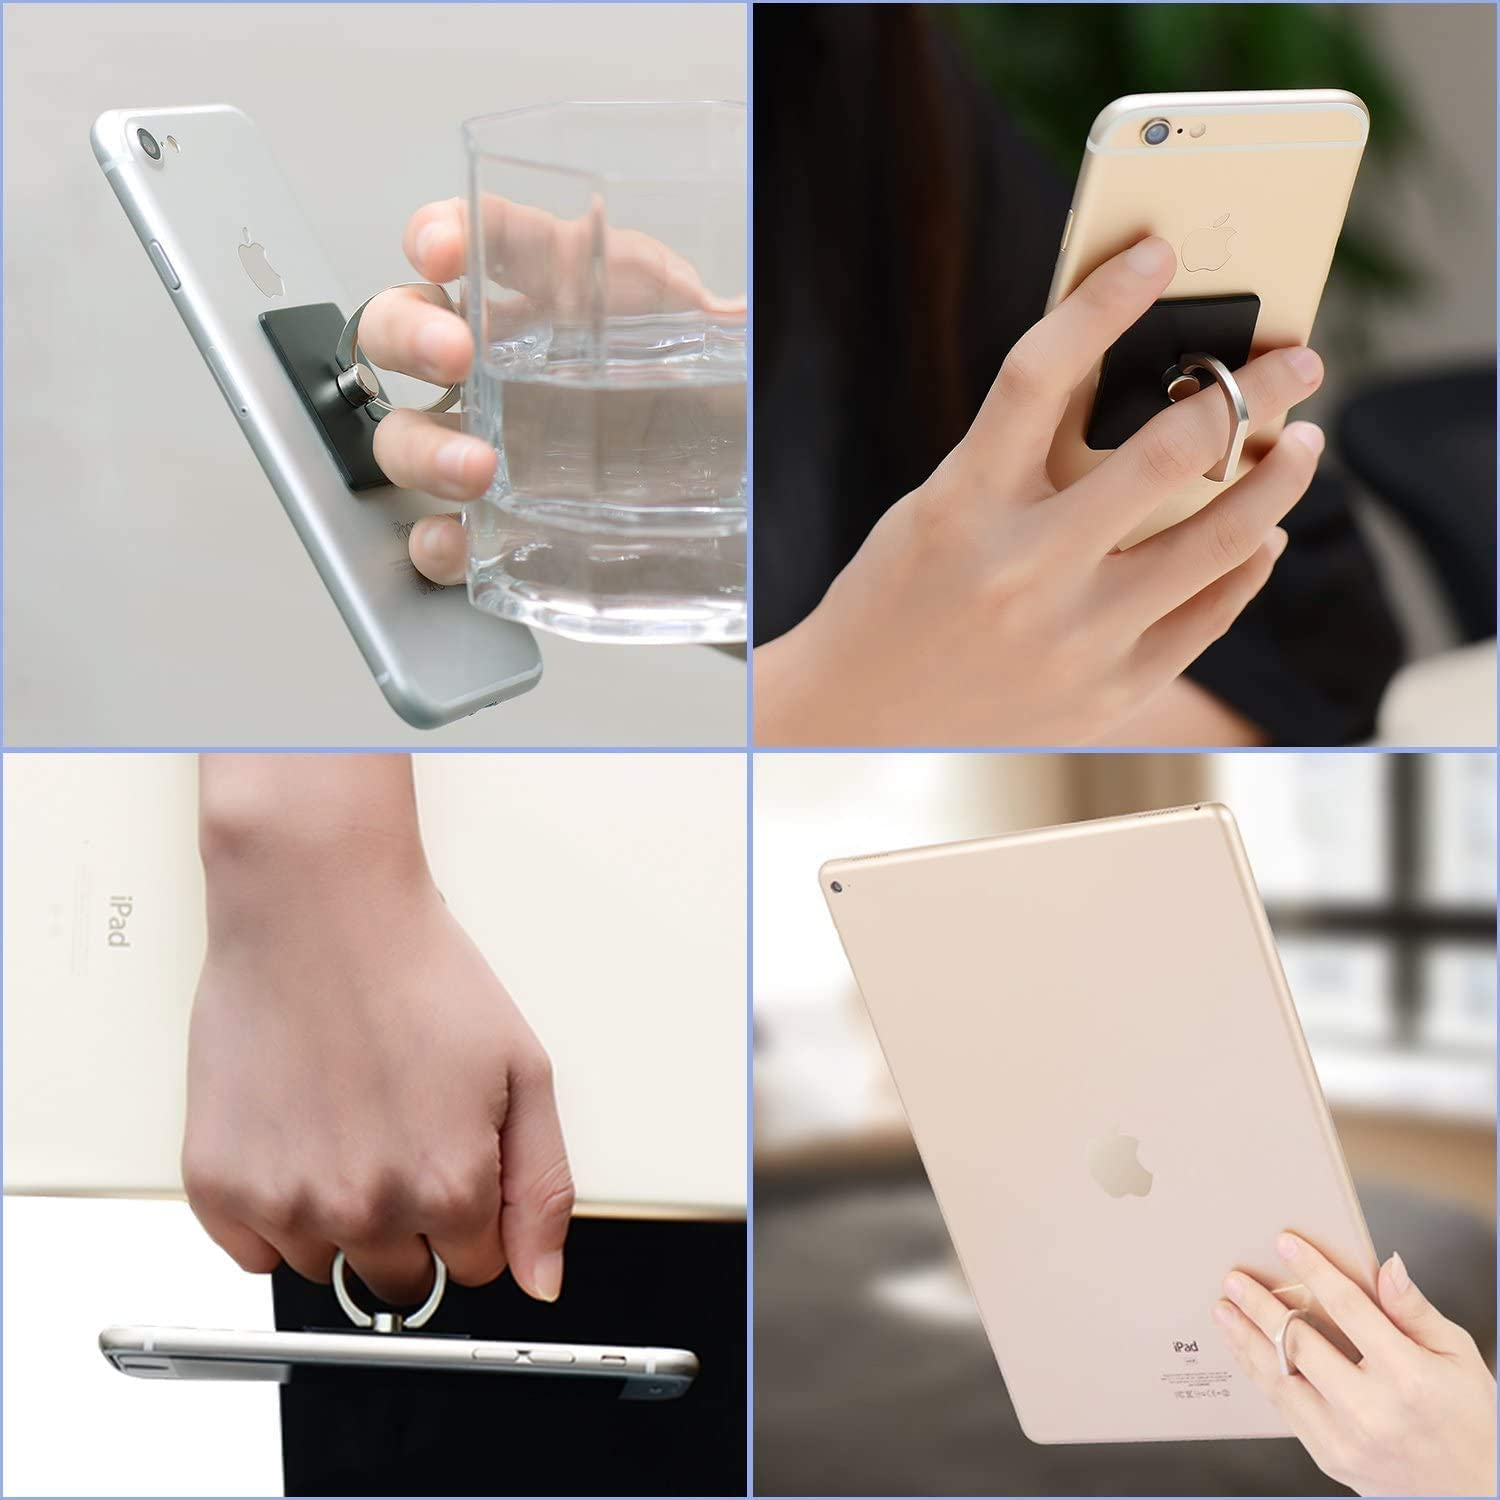 KEVEIUD Phone Ring Holder Silver 360/°Rotation Smartphone Kickstand Ring Grip Bracket for iphone XS X 8 7 6S 6 5S 5C 5 Cell Phone Finger Ring Holder Samsung Galaxy S9 S8 S7Edge S7 S6 Note 8 5